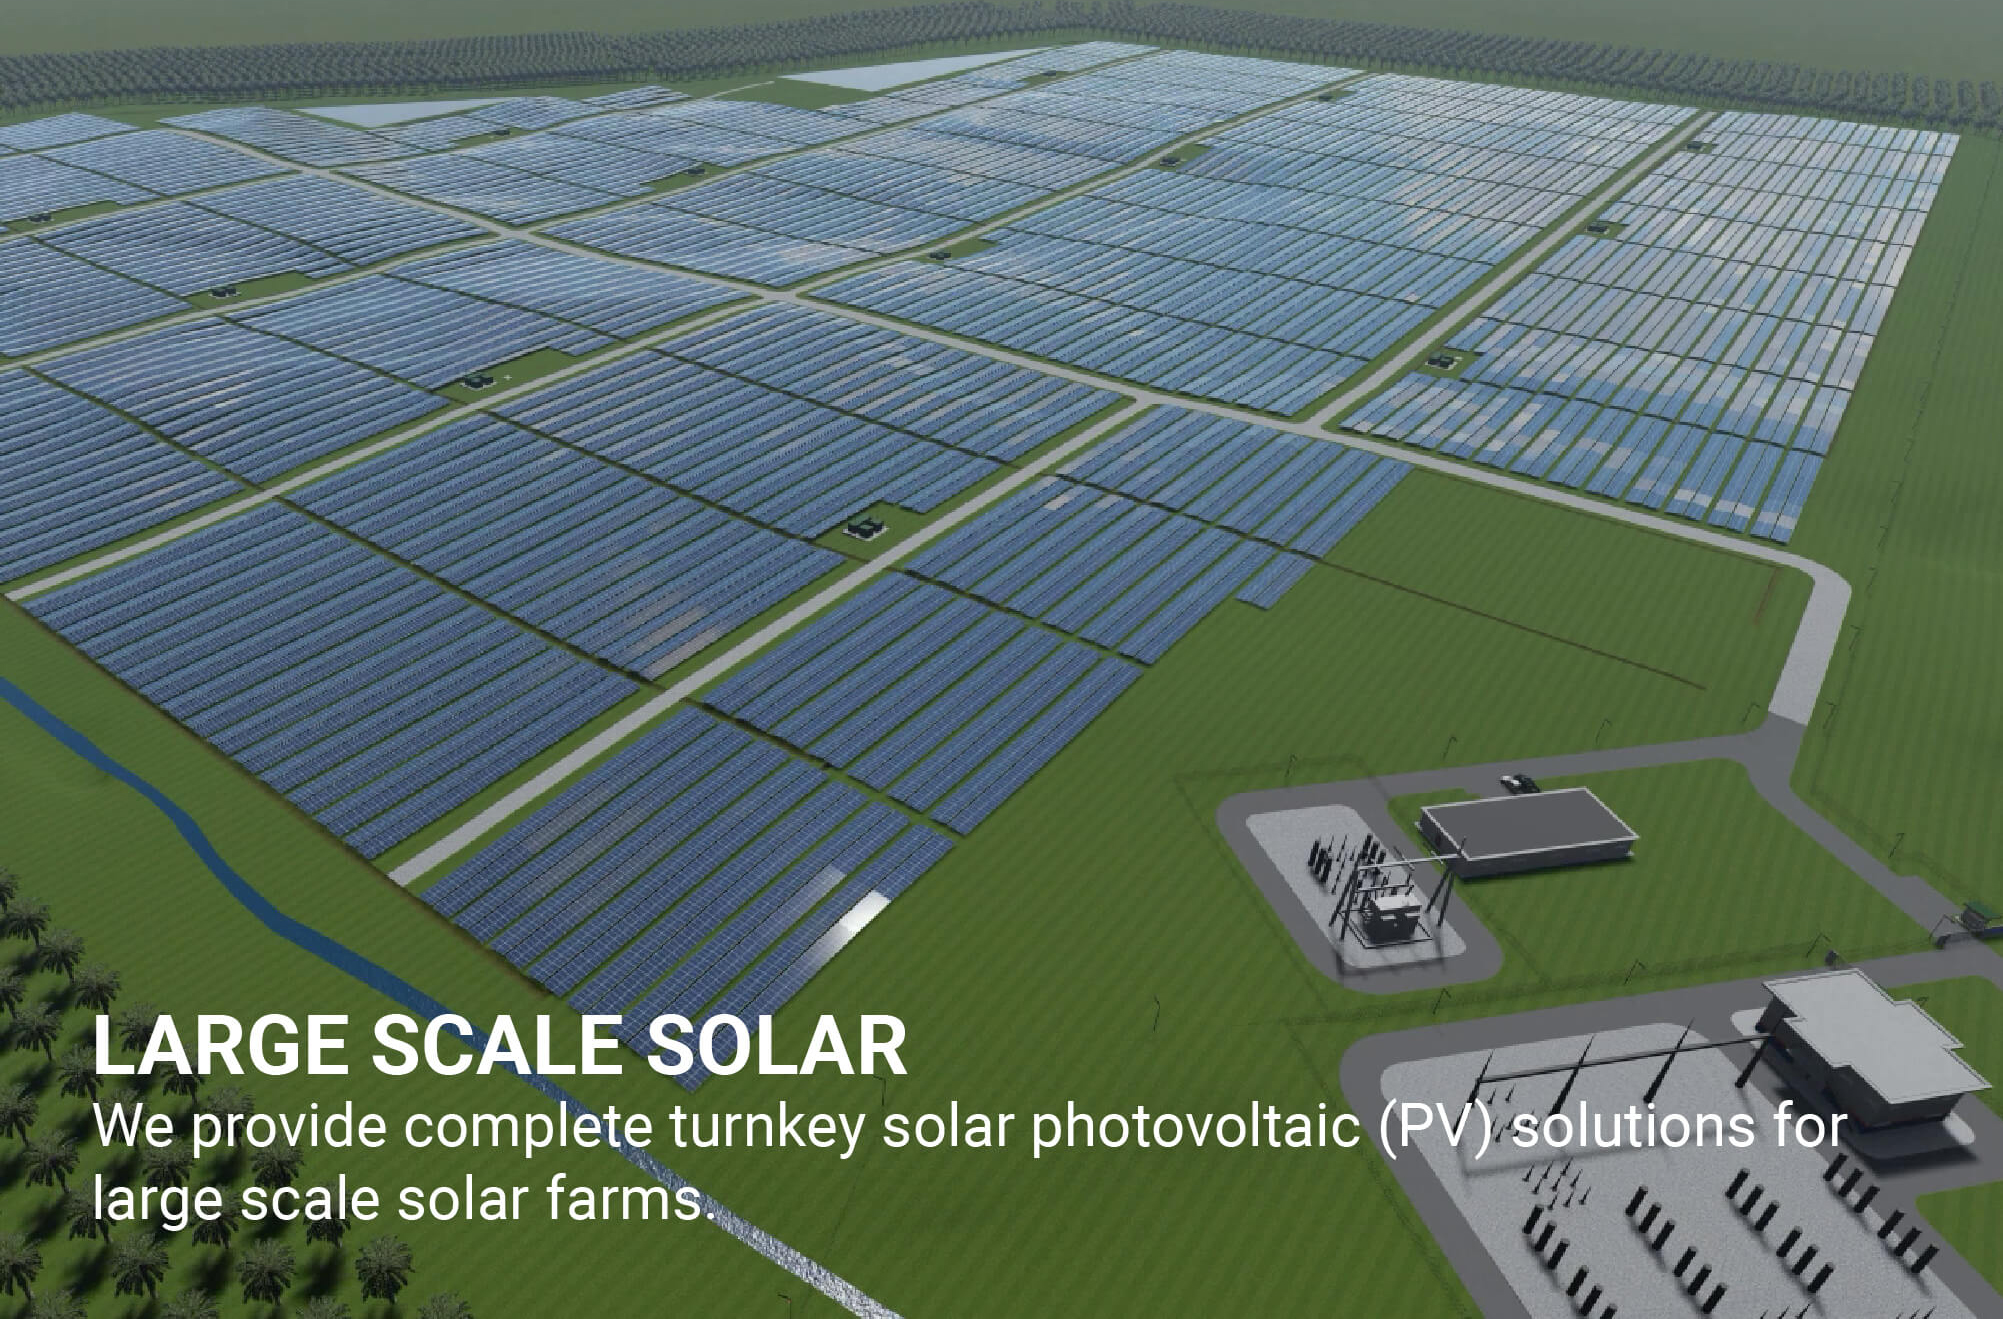 We provide complete turnkey solar photovoltaic (PV) solutions for large scale solar farms.